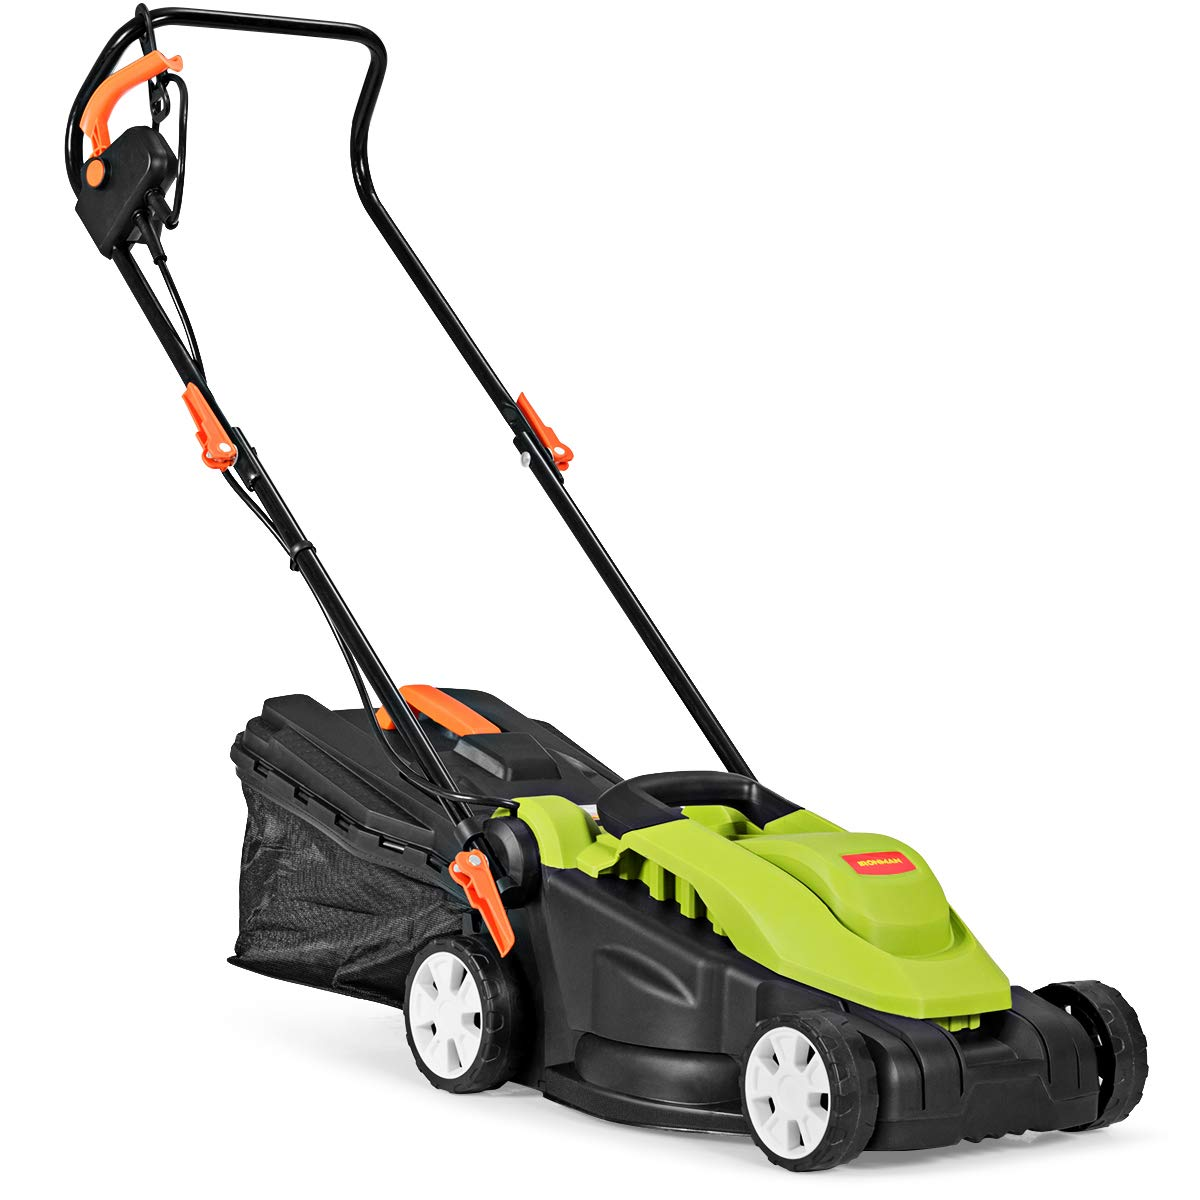 Goplus Electric Lawn Mower w/Folding Handle and Detachable Collection Box, 14-Inch 10Amp Height Adjustable Corded Mower, Green by Goplus